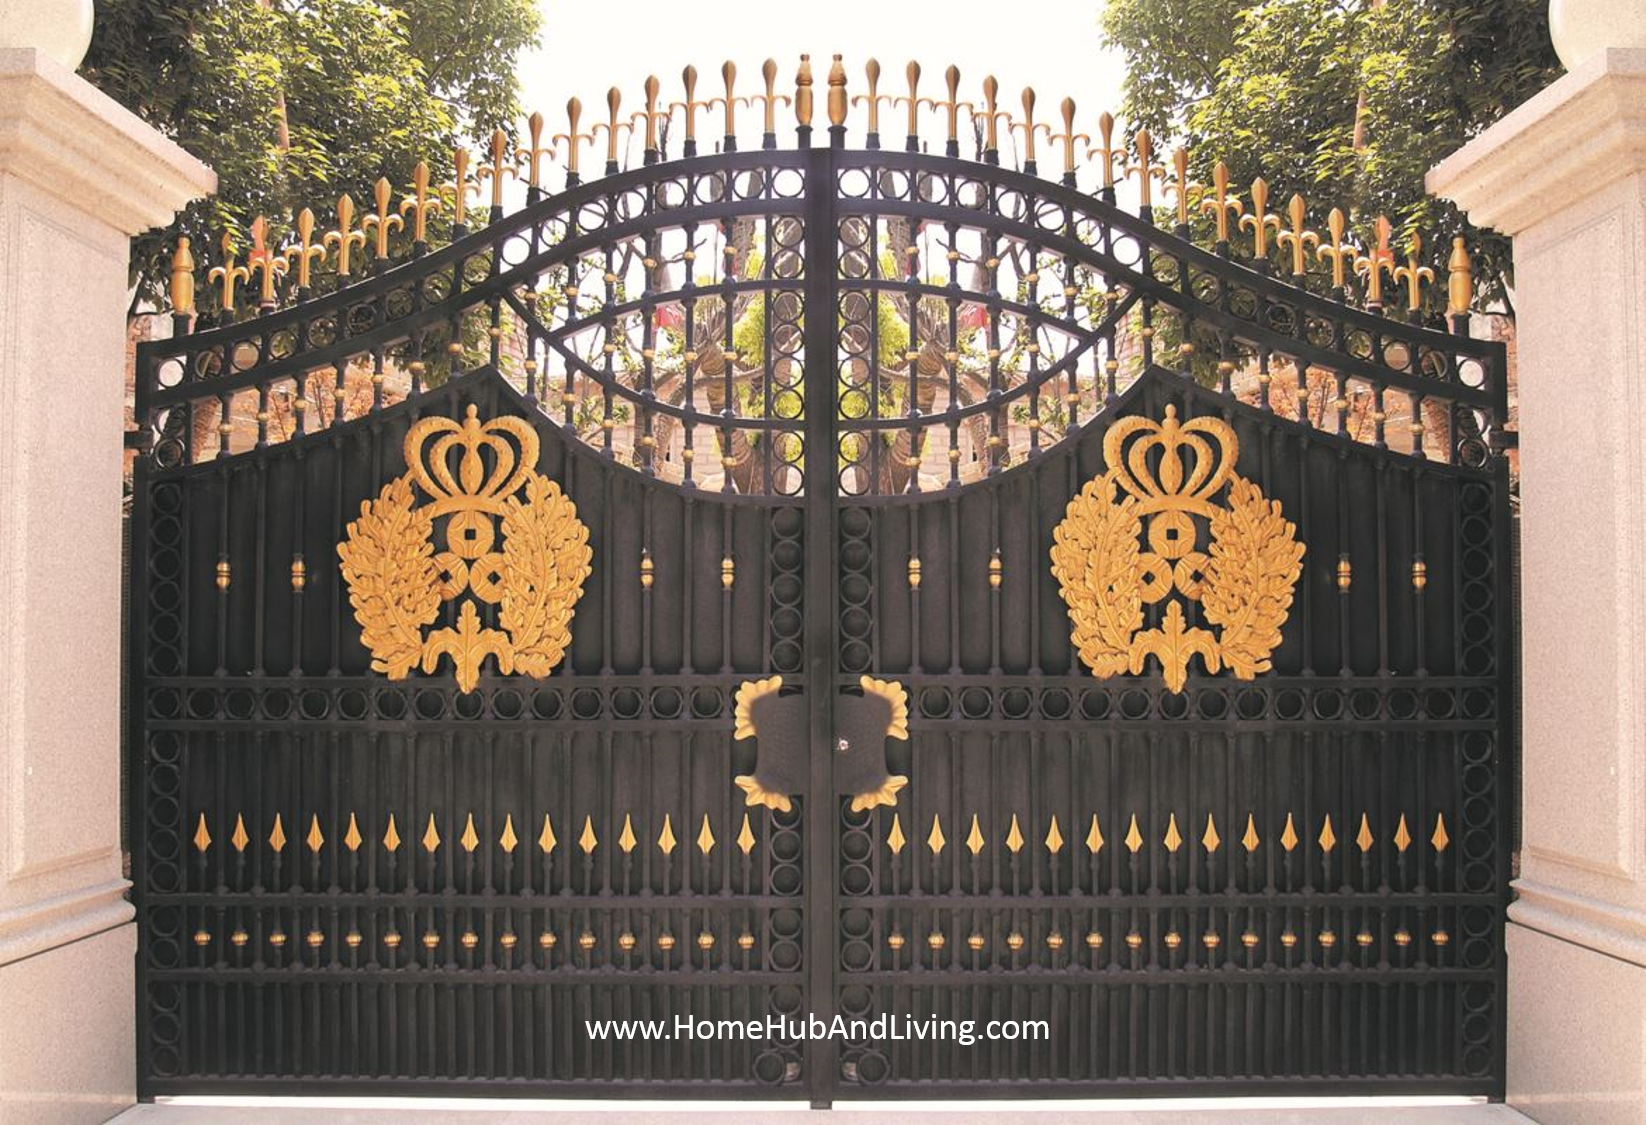 Grand Entrance French design wrought iron Gate FZY TM024 Sound Proofing or Noise Damping Cancellation / Reducing Barrier: UPVC Windows & Doors Solutions Now Come with Built in Curtain Blinds (Optional Woodgrain Aluminium Frame Door)